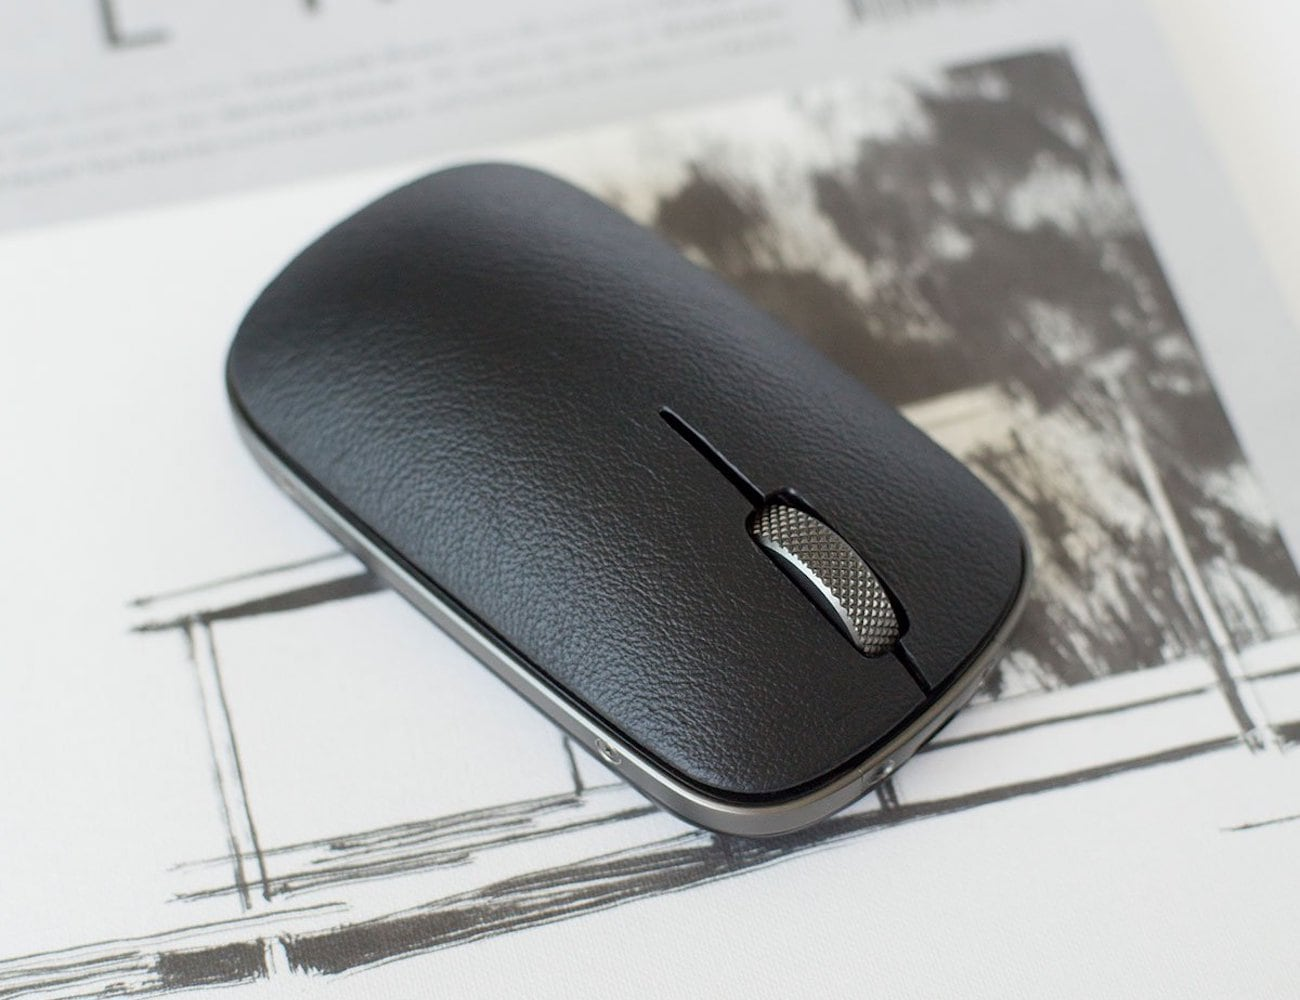 AZIO Retro Classic Mouse works on almost any surface